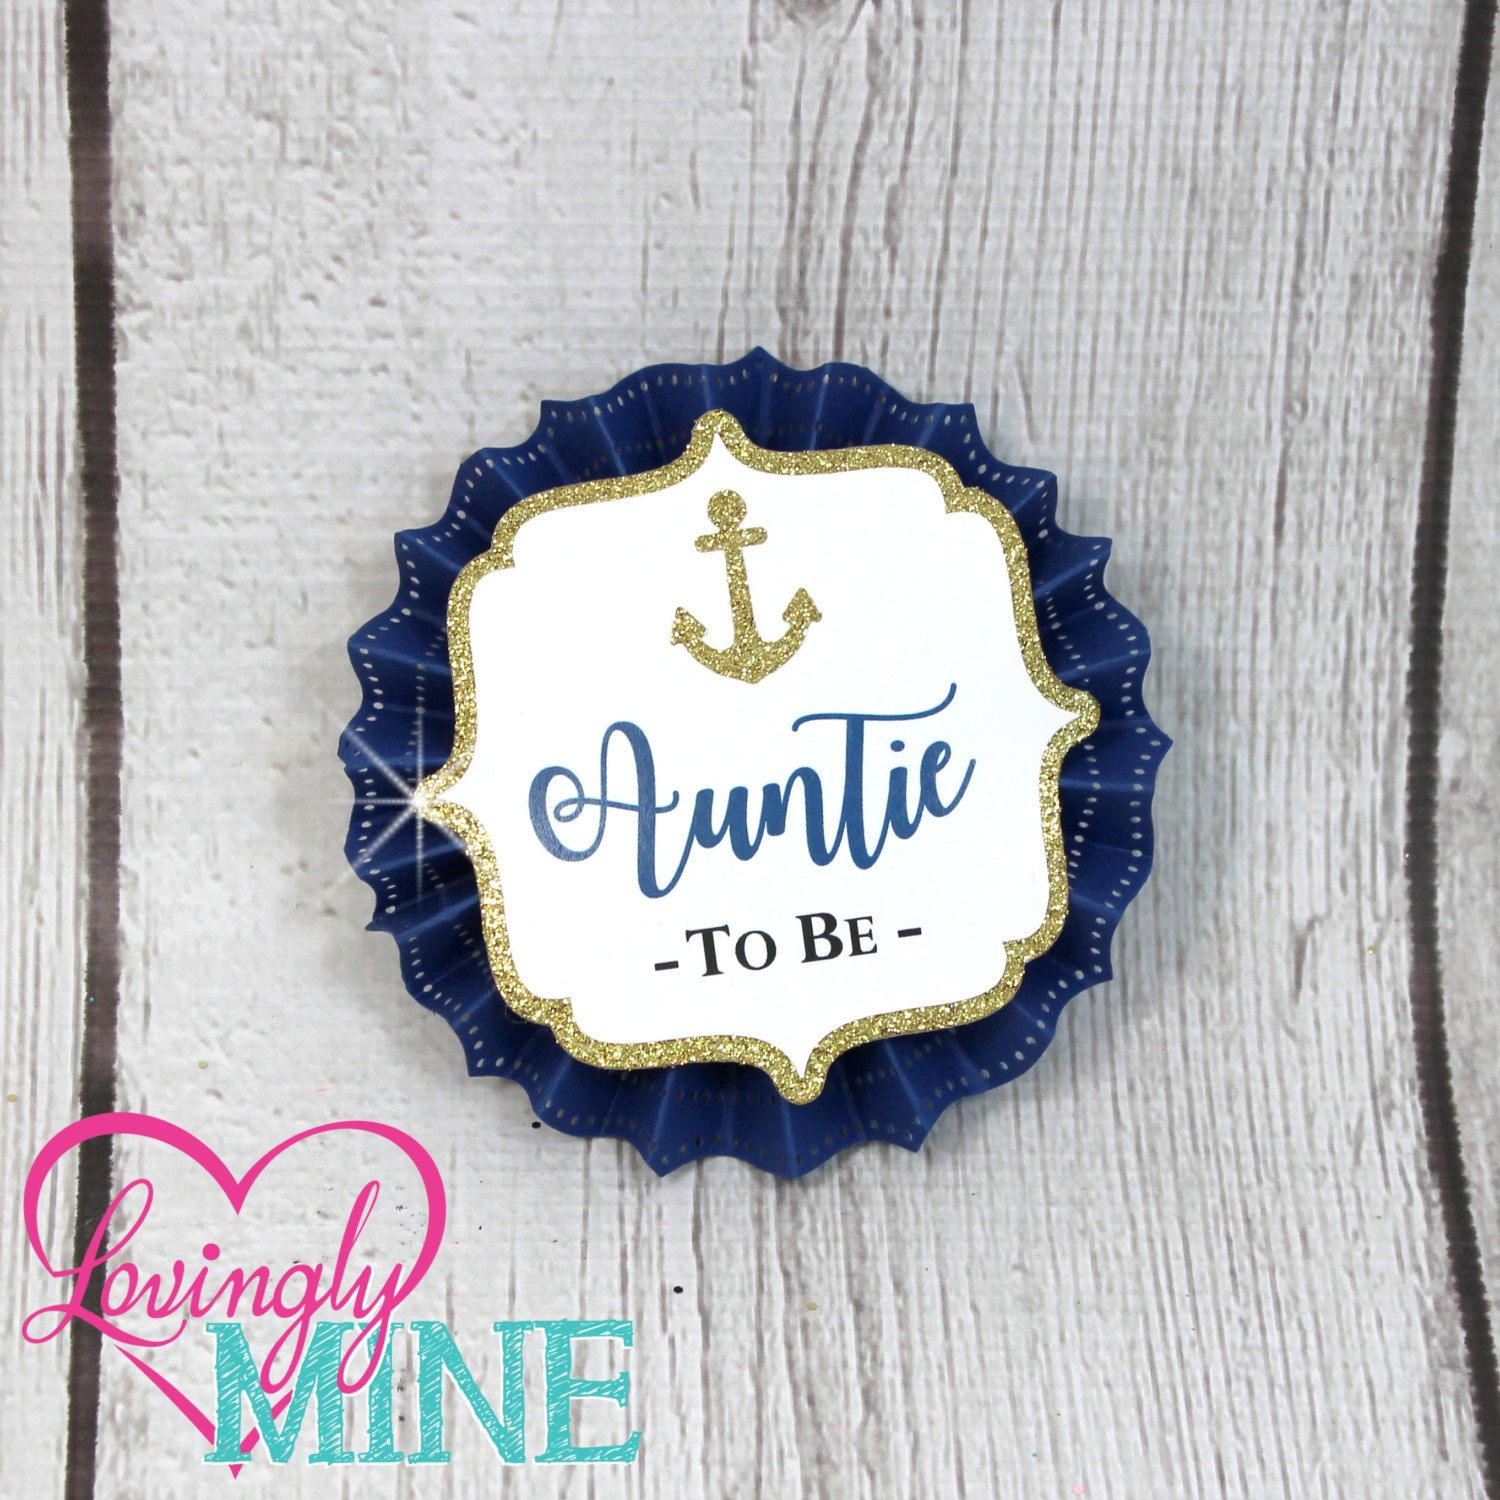 Name Tags Corsages Navy Blue White & Glitter Gold Nautical Baby